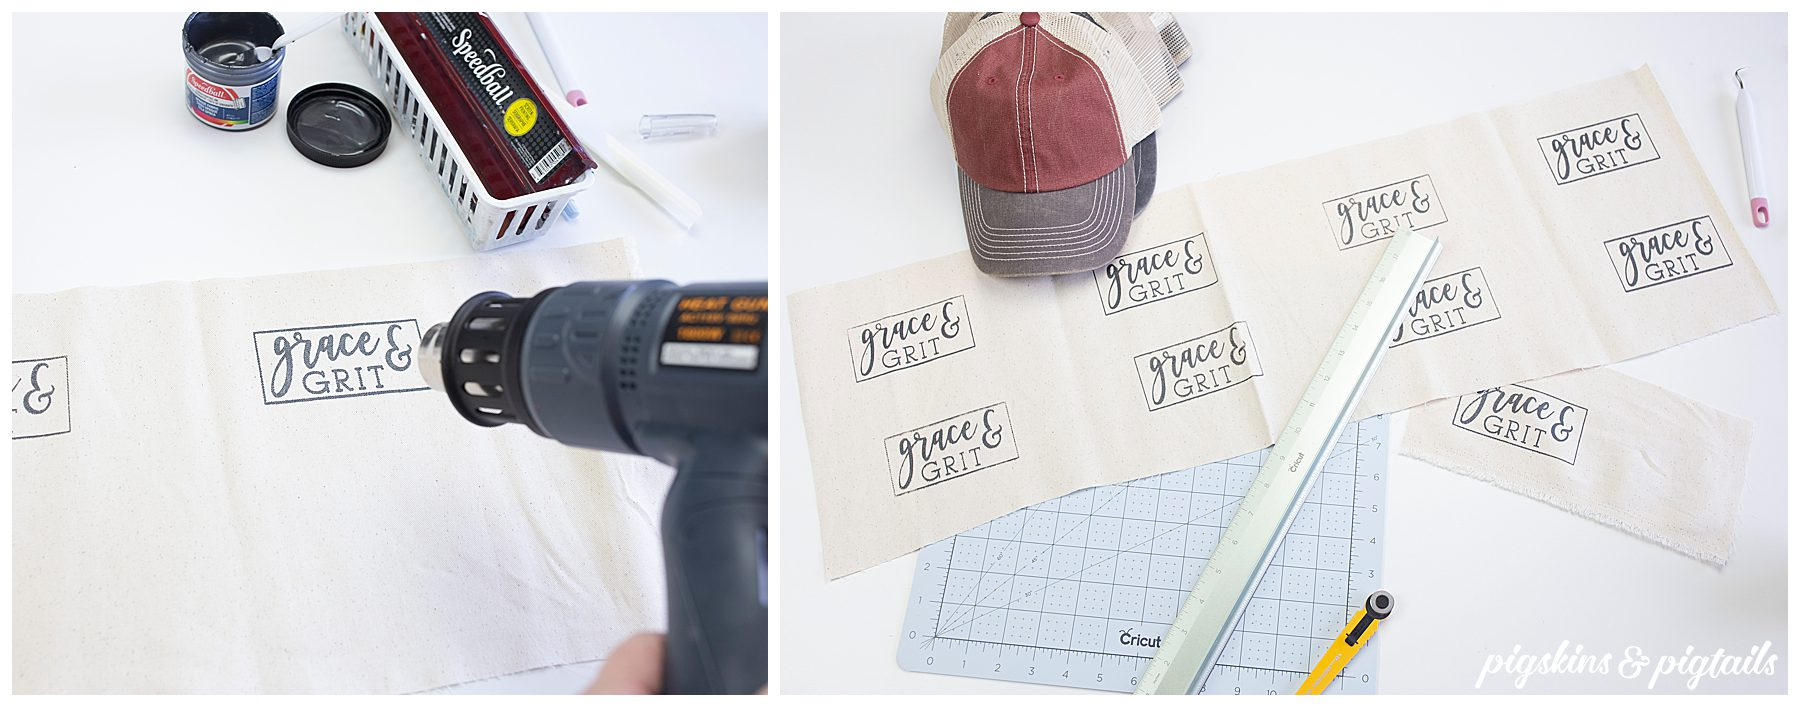 how to make own patches screen printing